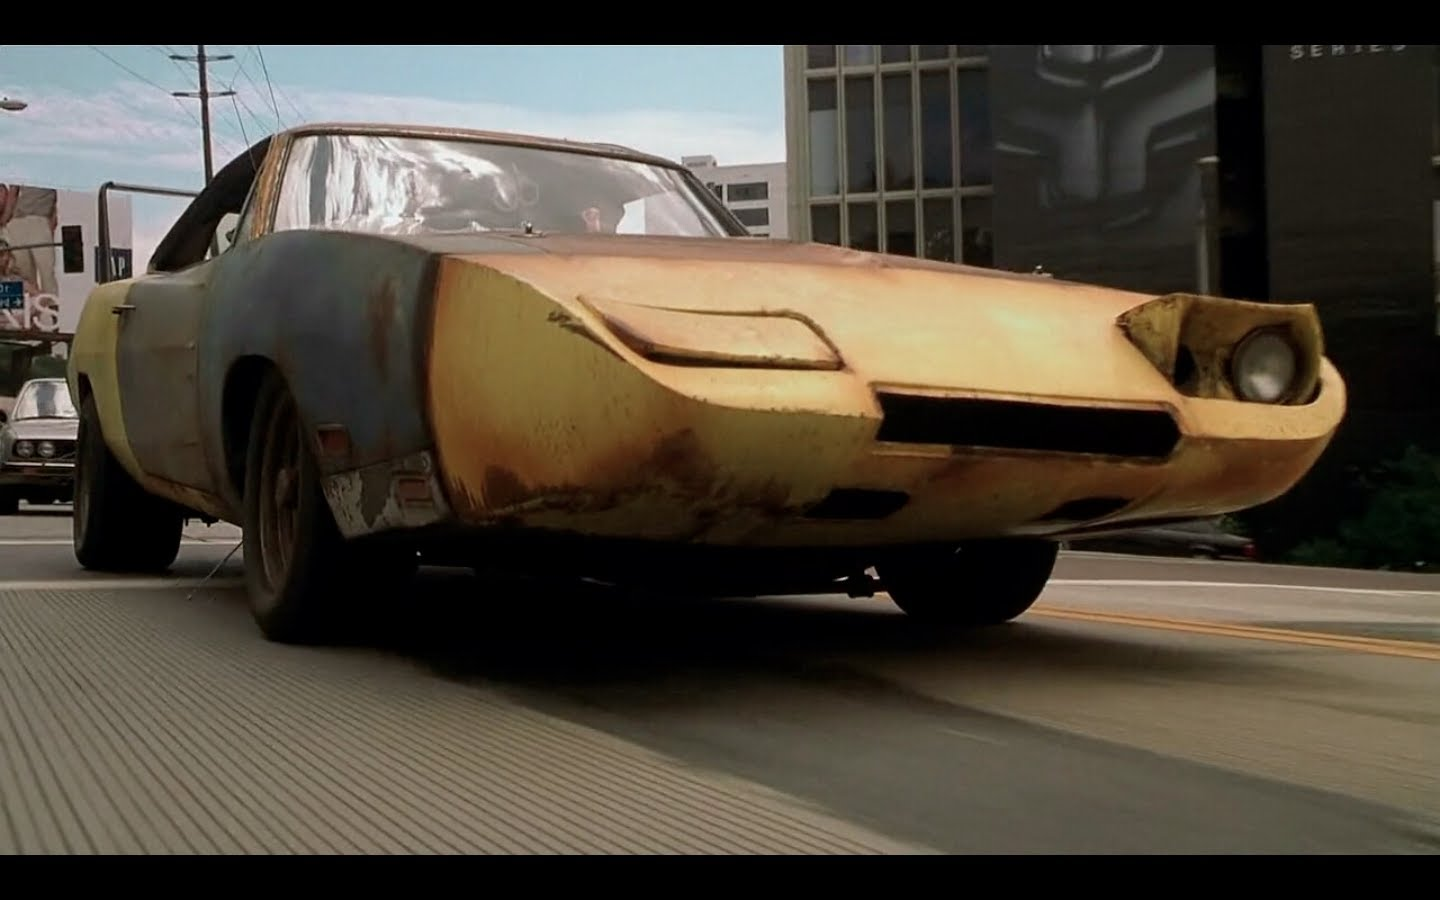 1968 Dodge Charger Wallpaper Cars Dodge Charger 1969 Fast And Furious Wallpaper Engine